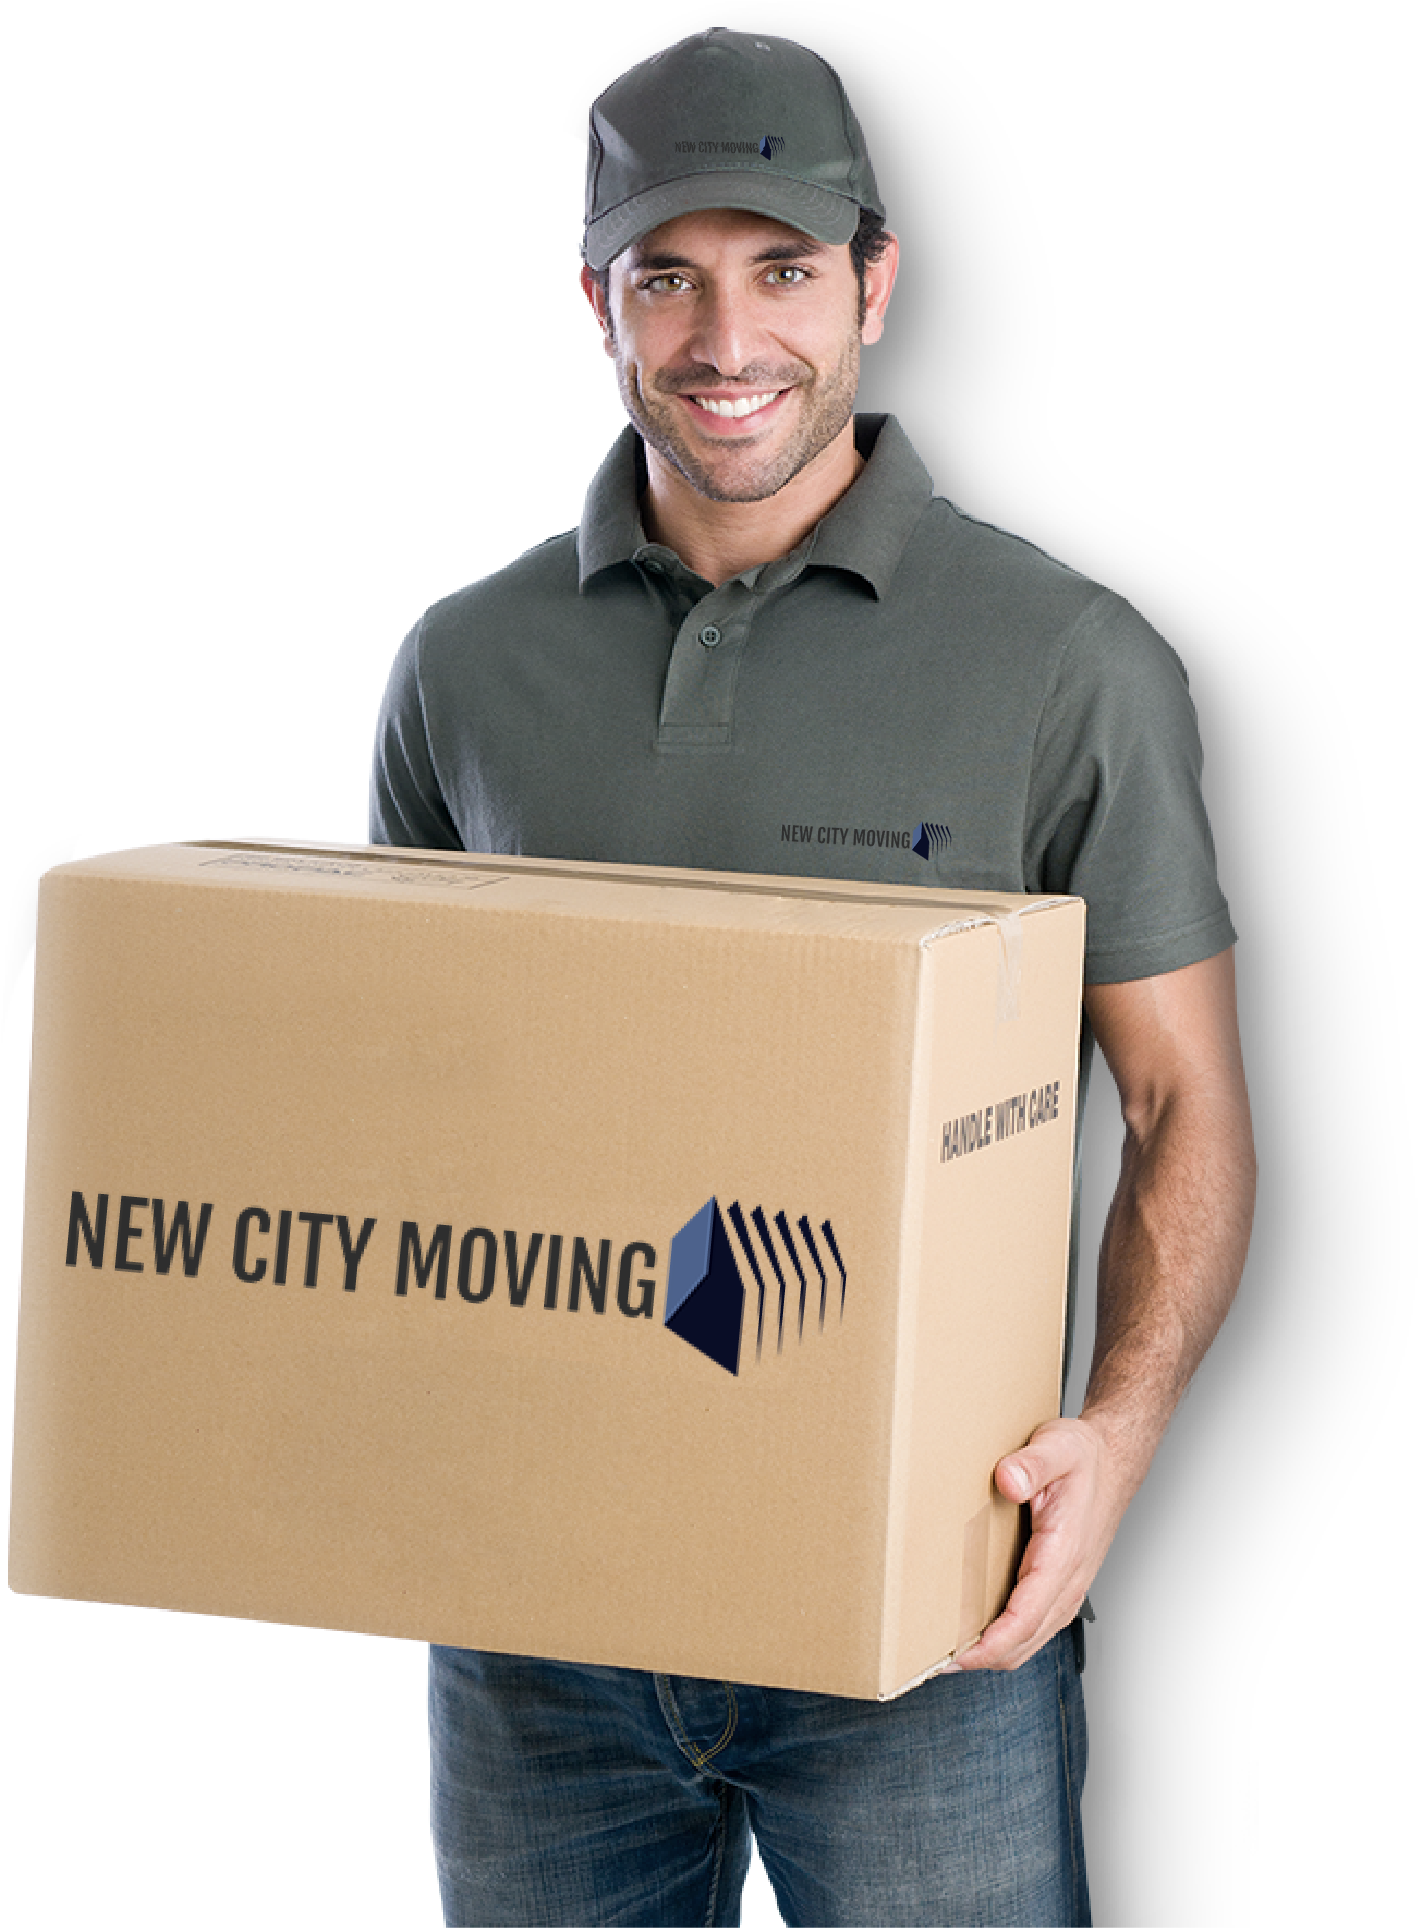 //www.newcitymovingandstorage.com/wp-content/uploads/2020/06/person-2.png